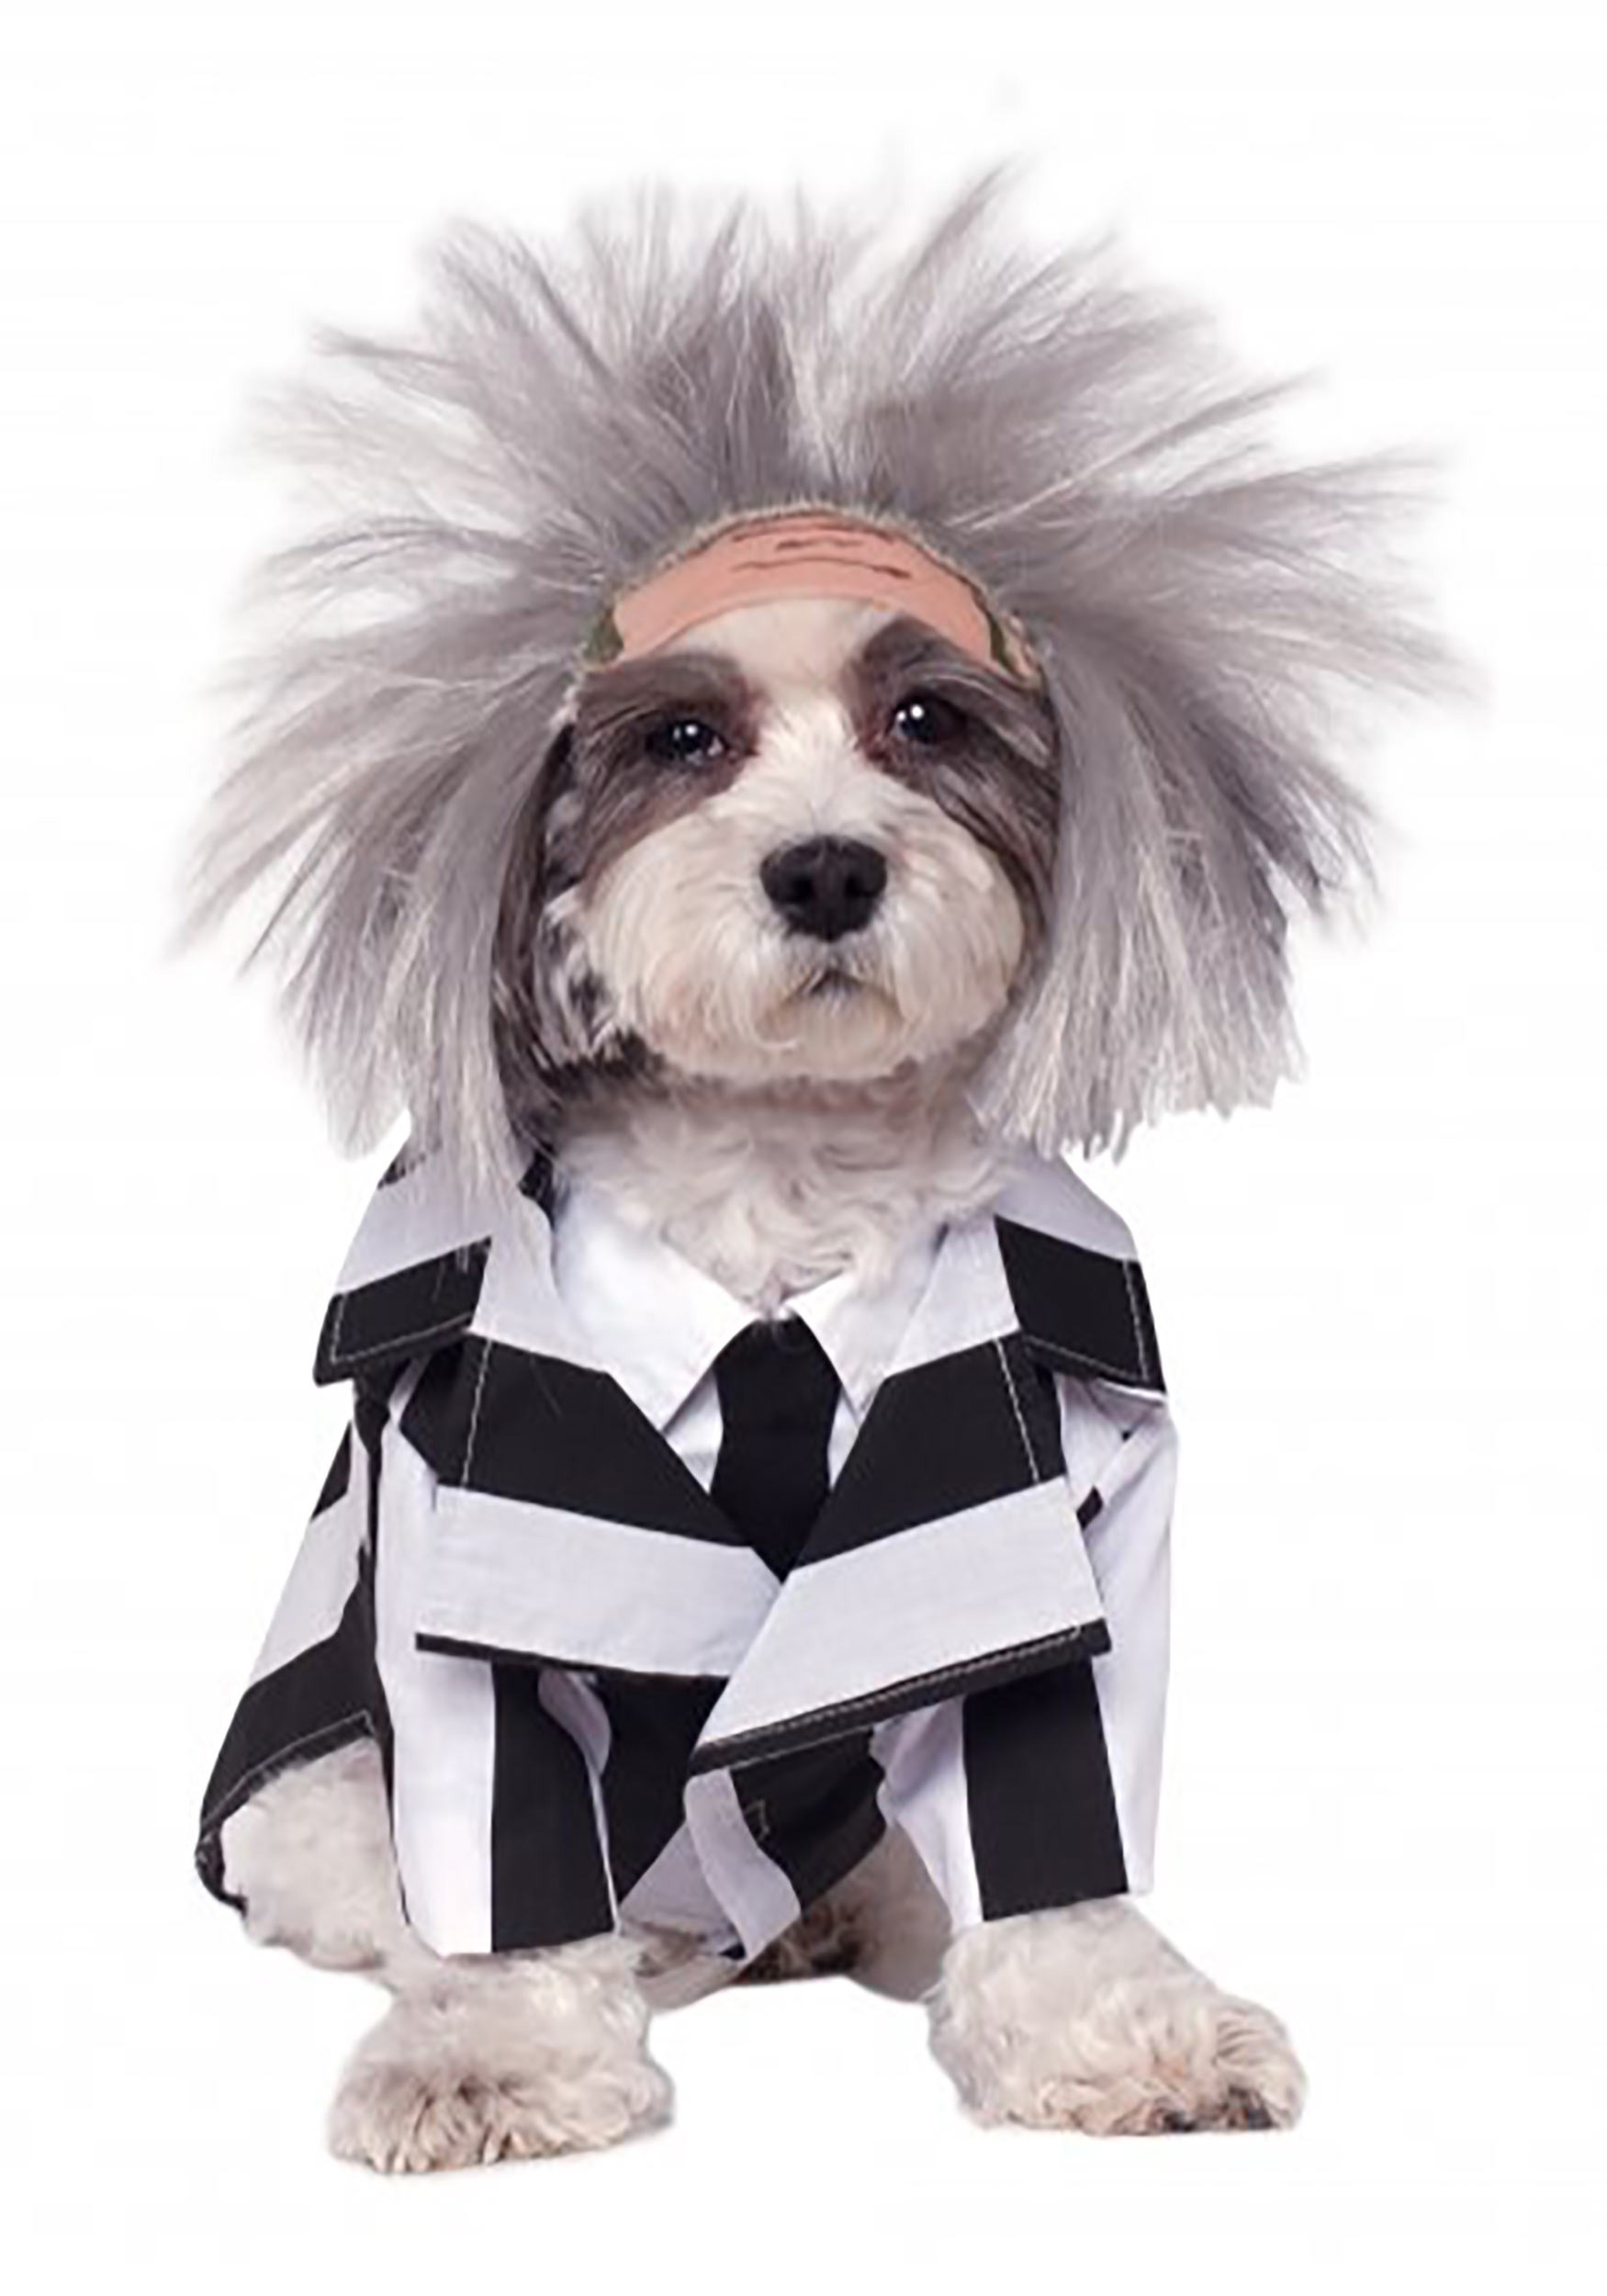 Beetlejuice Pet Costume  sc 1 st  Halloween Costumes & Pet Costumes - Cat u0026 Dog Halloween Costumes - HalloweenCostumes.com